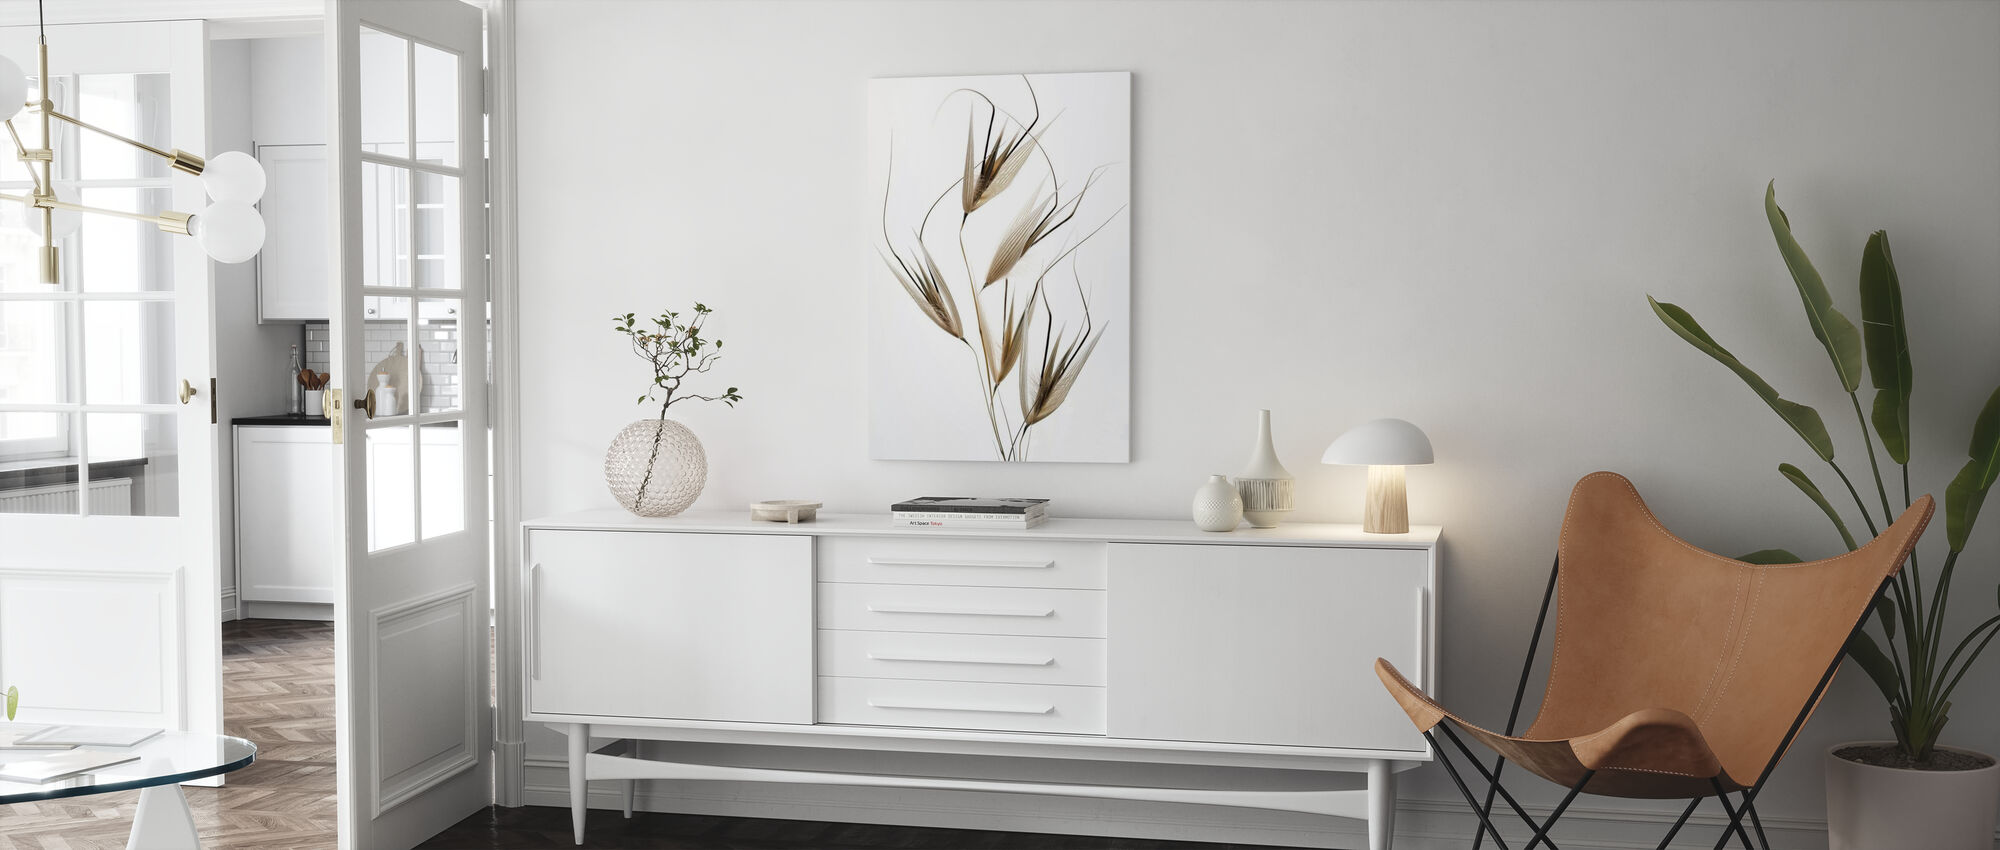 Delicacy of Nature - Canvas print - Living Room